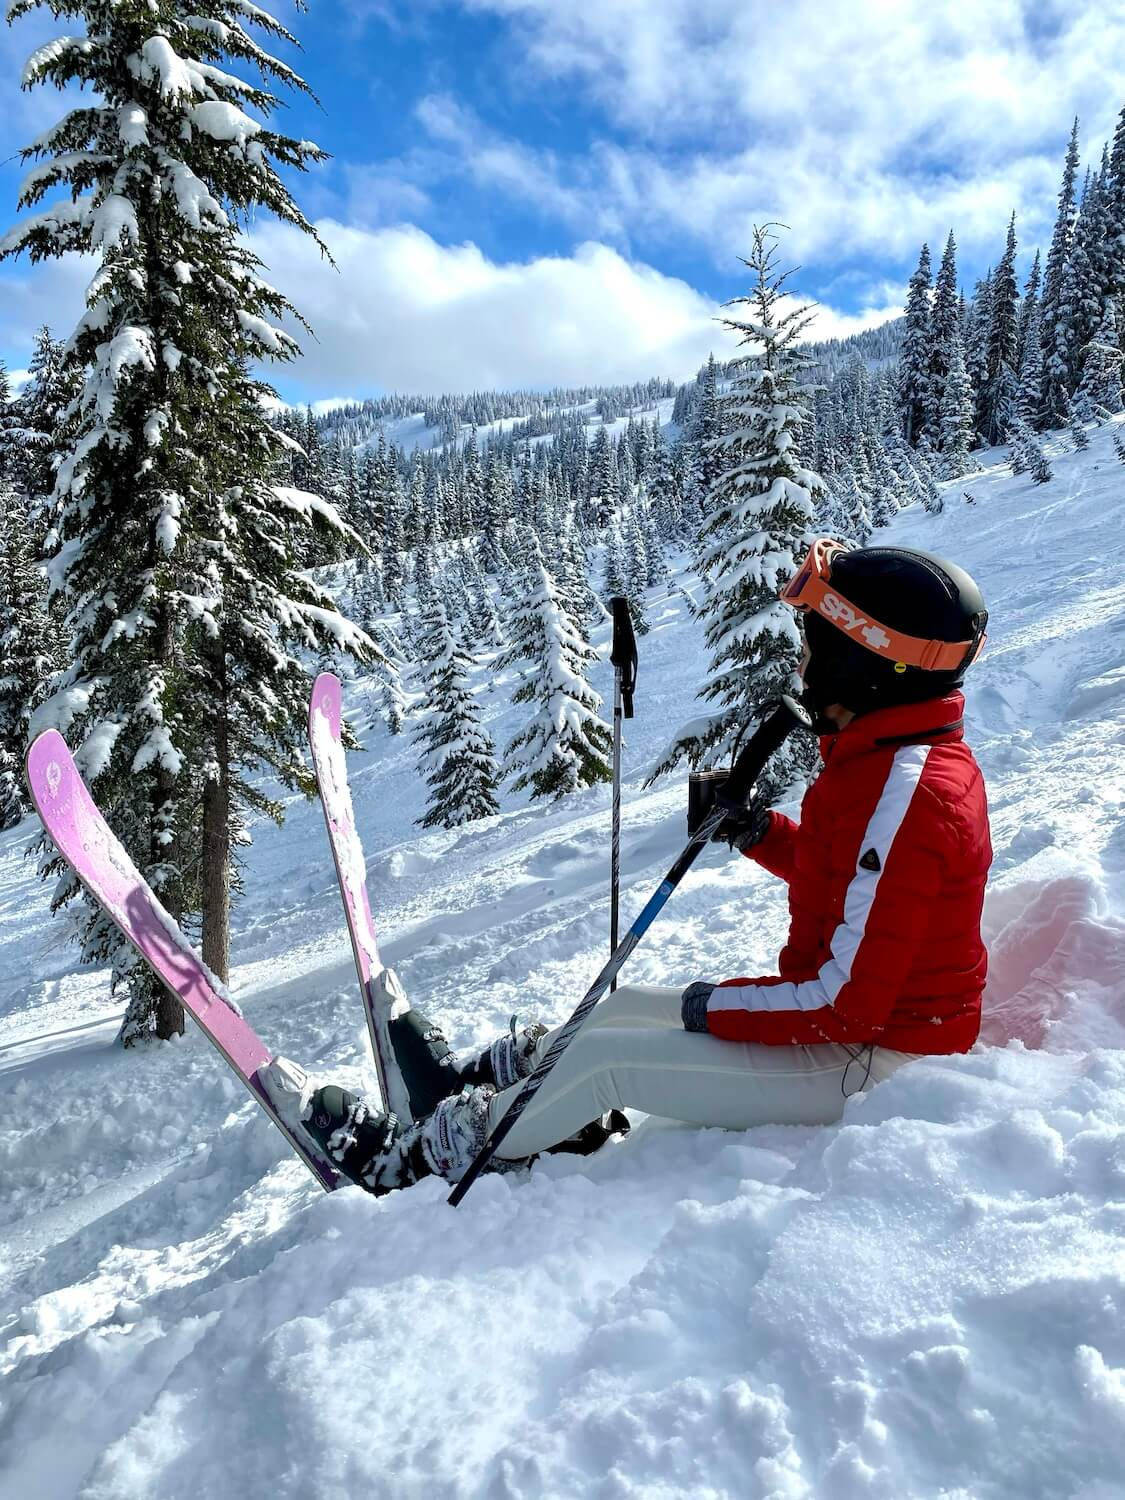 A skier takes a break by sitting in the fluffy snow.  Her purple skis are stuck into the snow and she is wearing a red jacket with white pants.  There are small fir trees covered in powdery snow while the blue sky shines above.